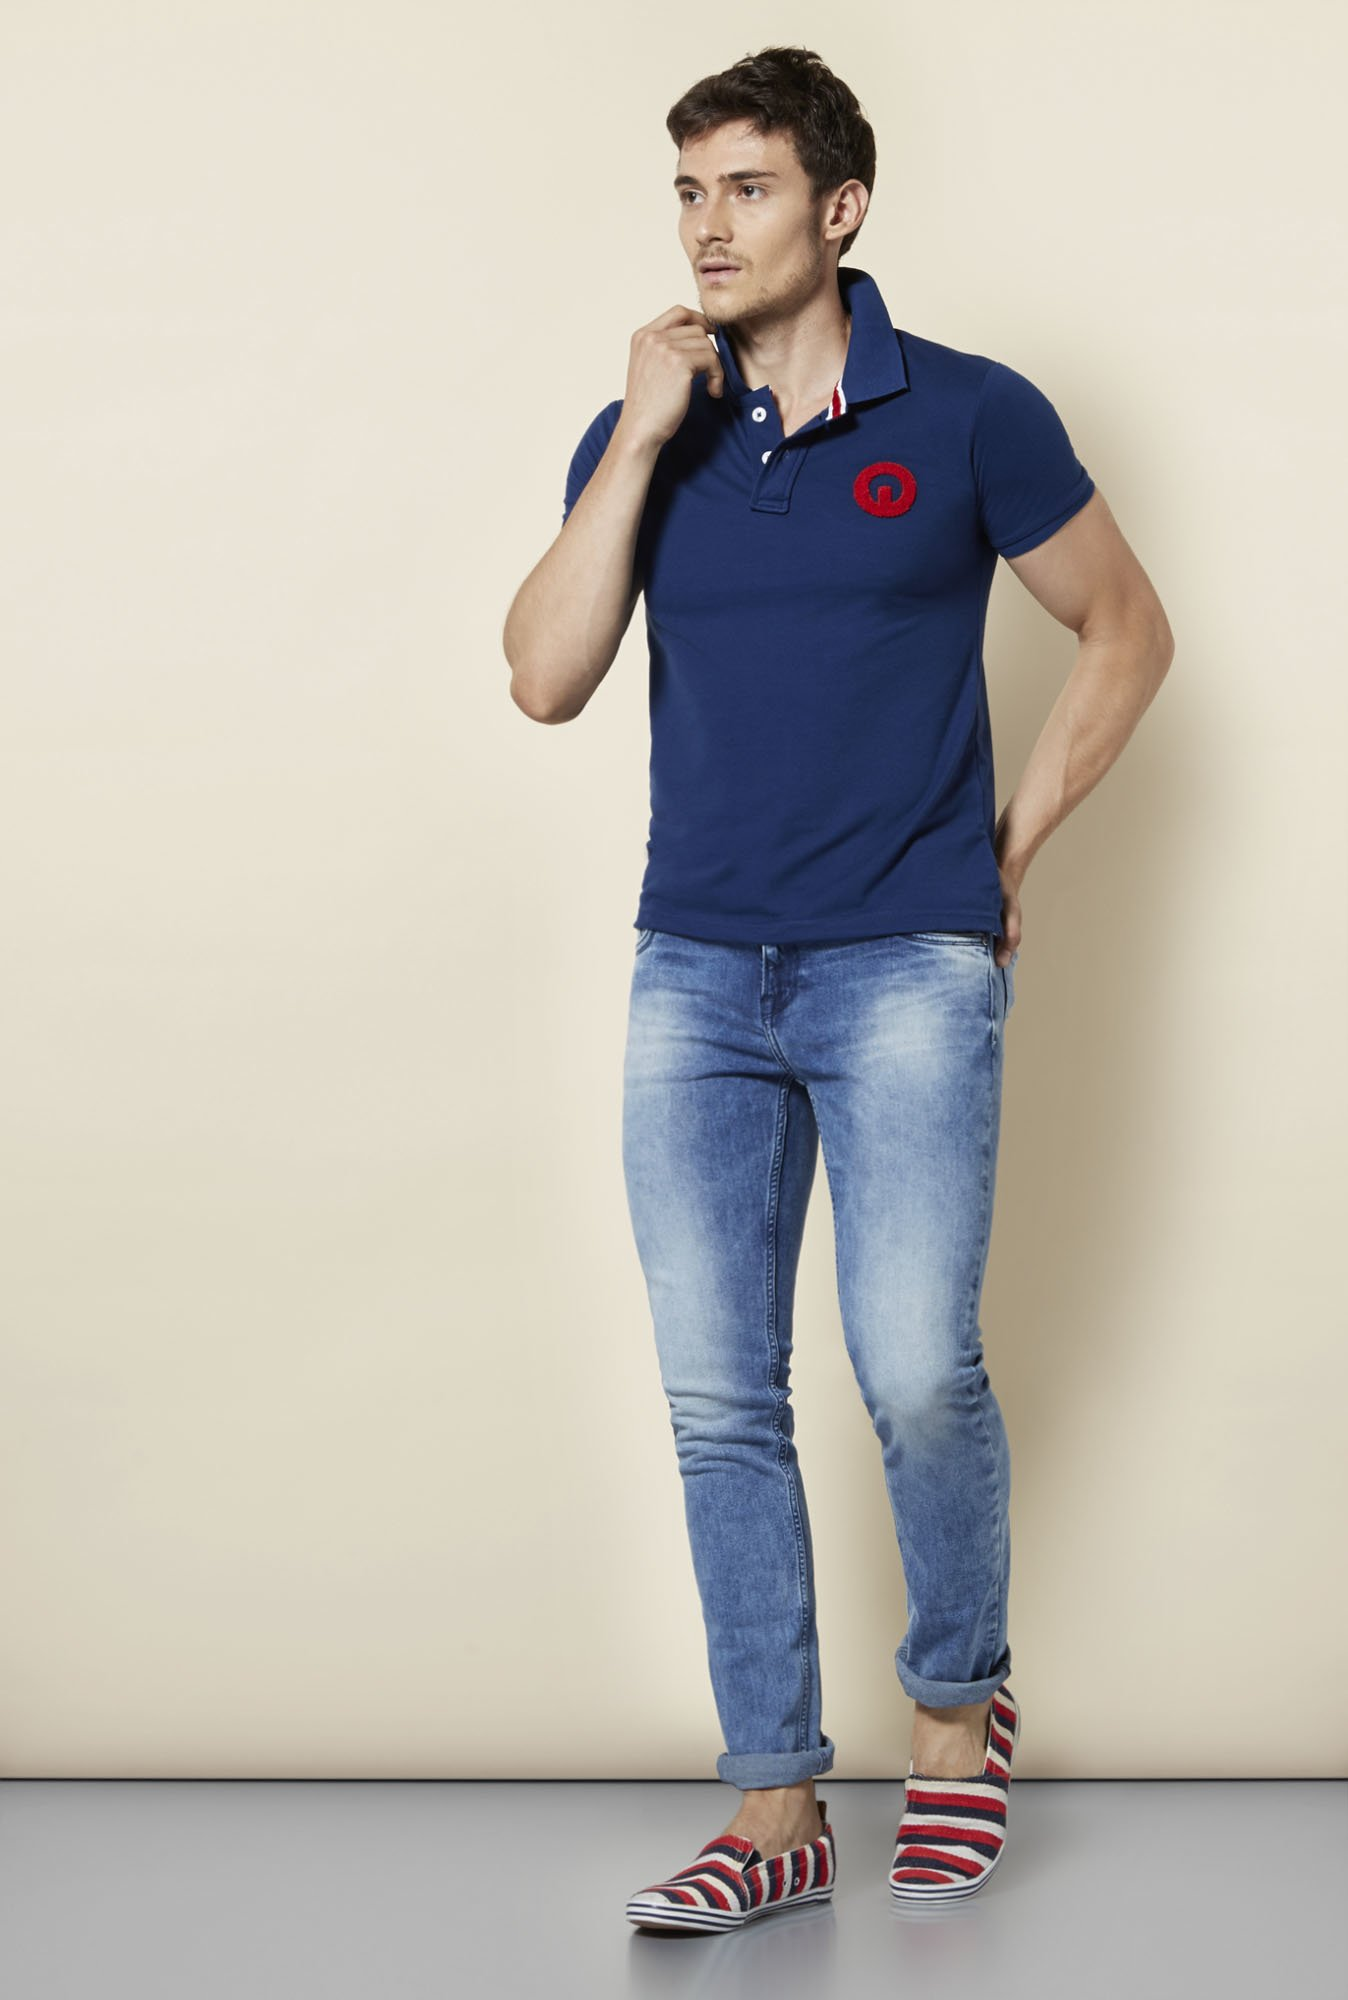 Integriti Blue Slim Fit Polo T Shirt